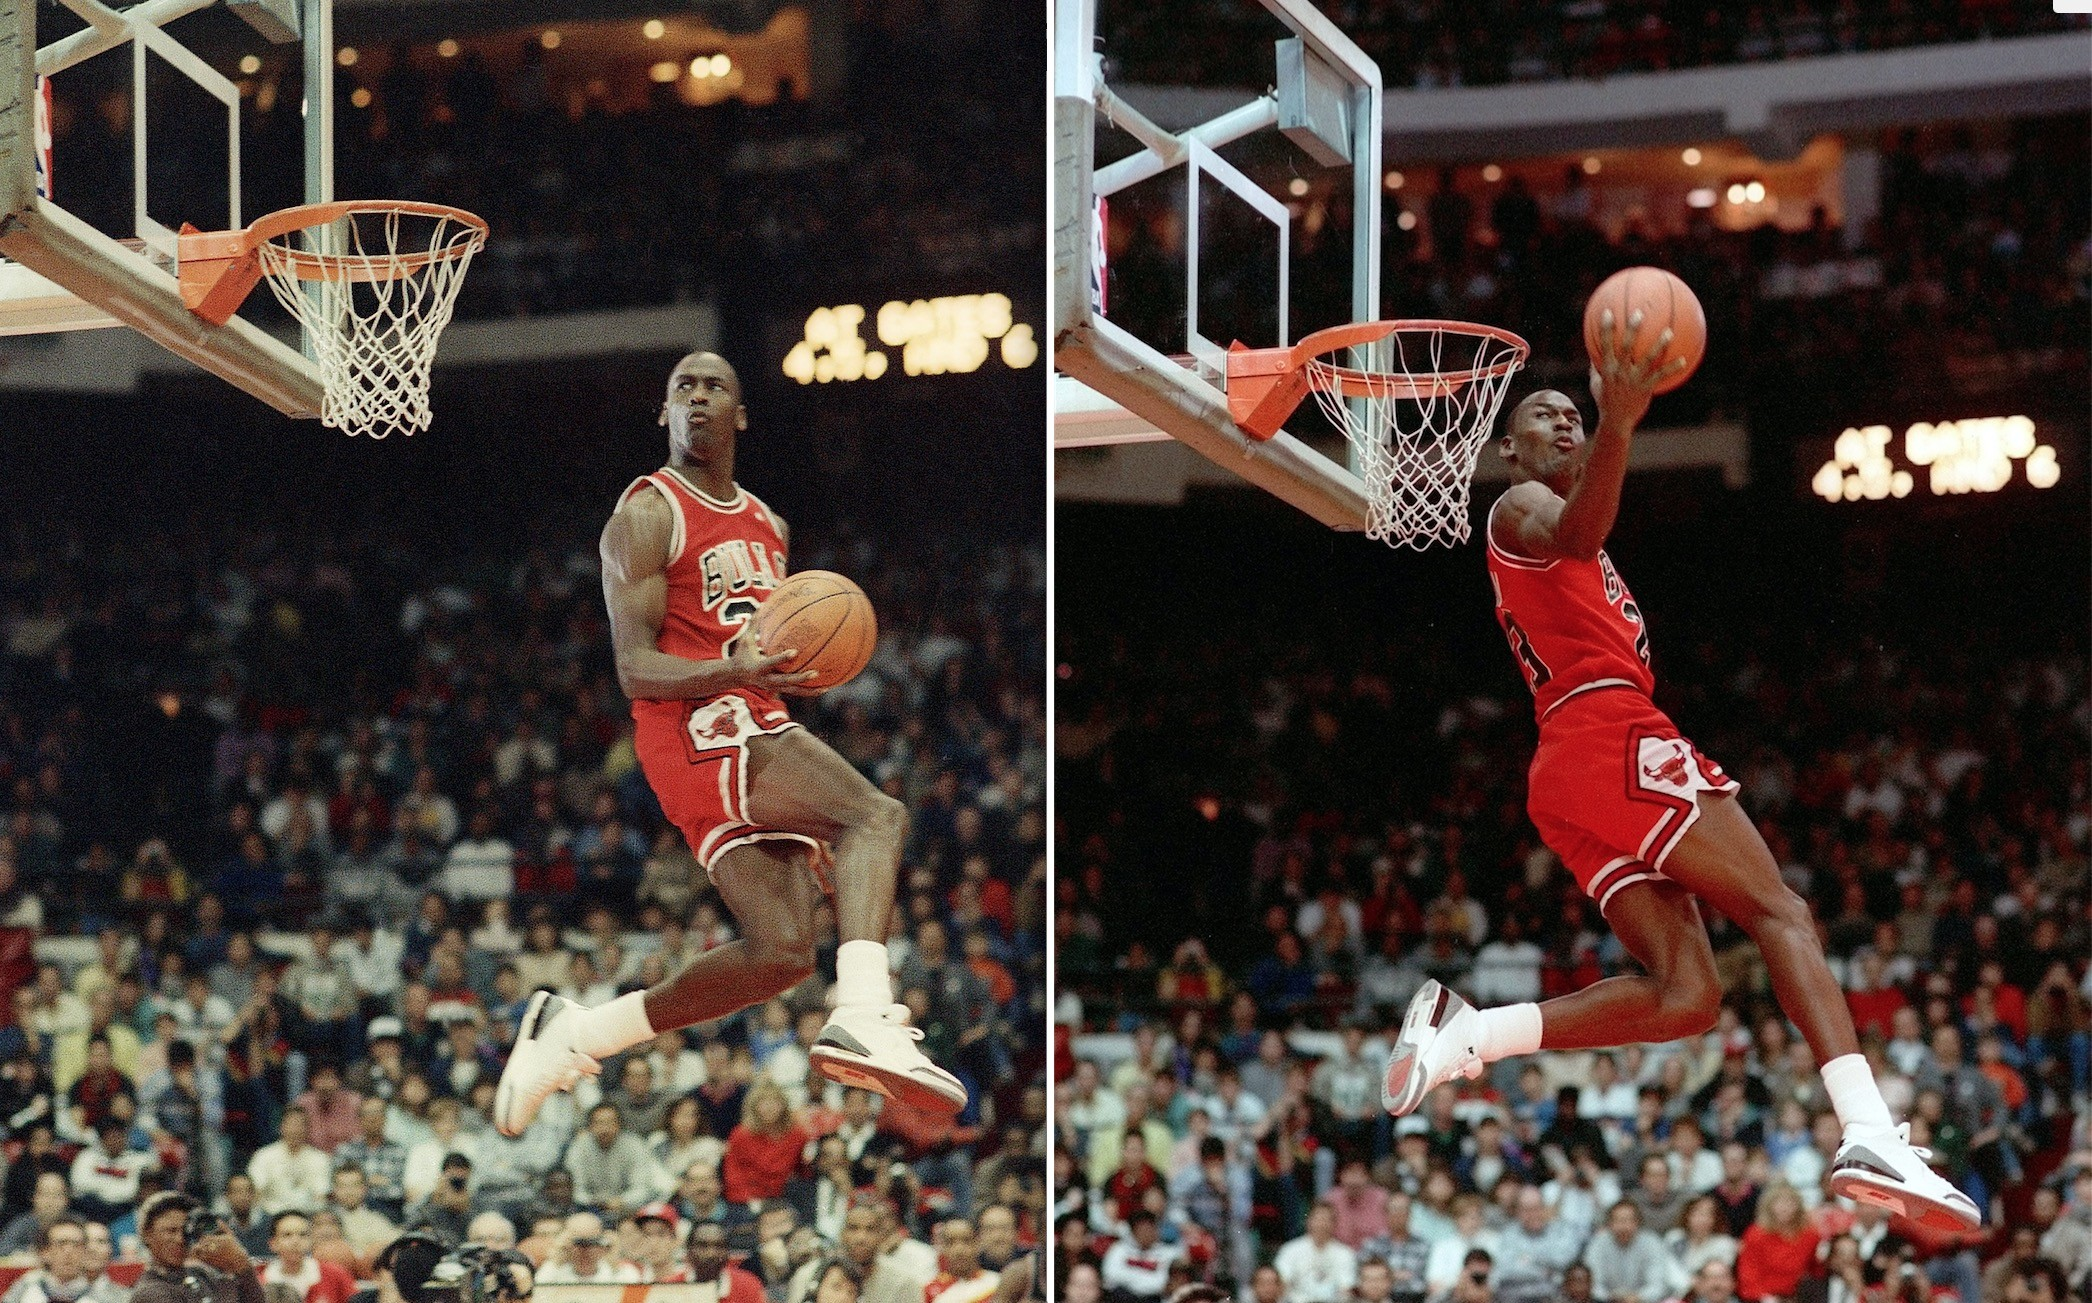 basketball without michael jordan Michael jordan retired after the 1997-98 nba why he can't be compared to michael jordan jordan played basketball so hard he bent the game to.